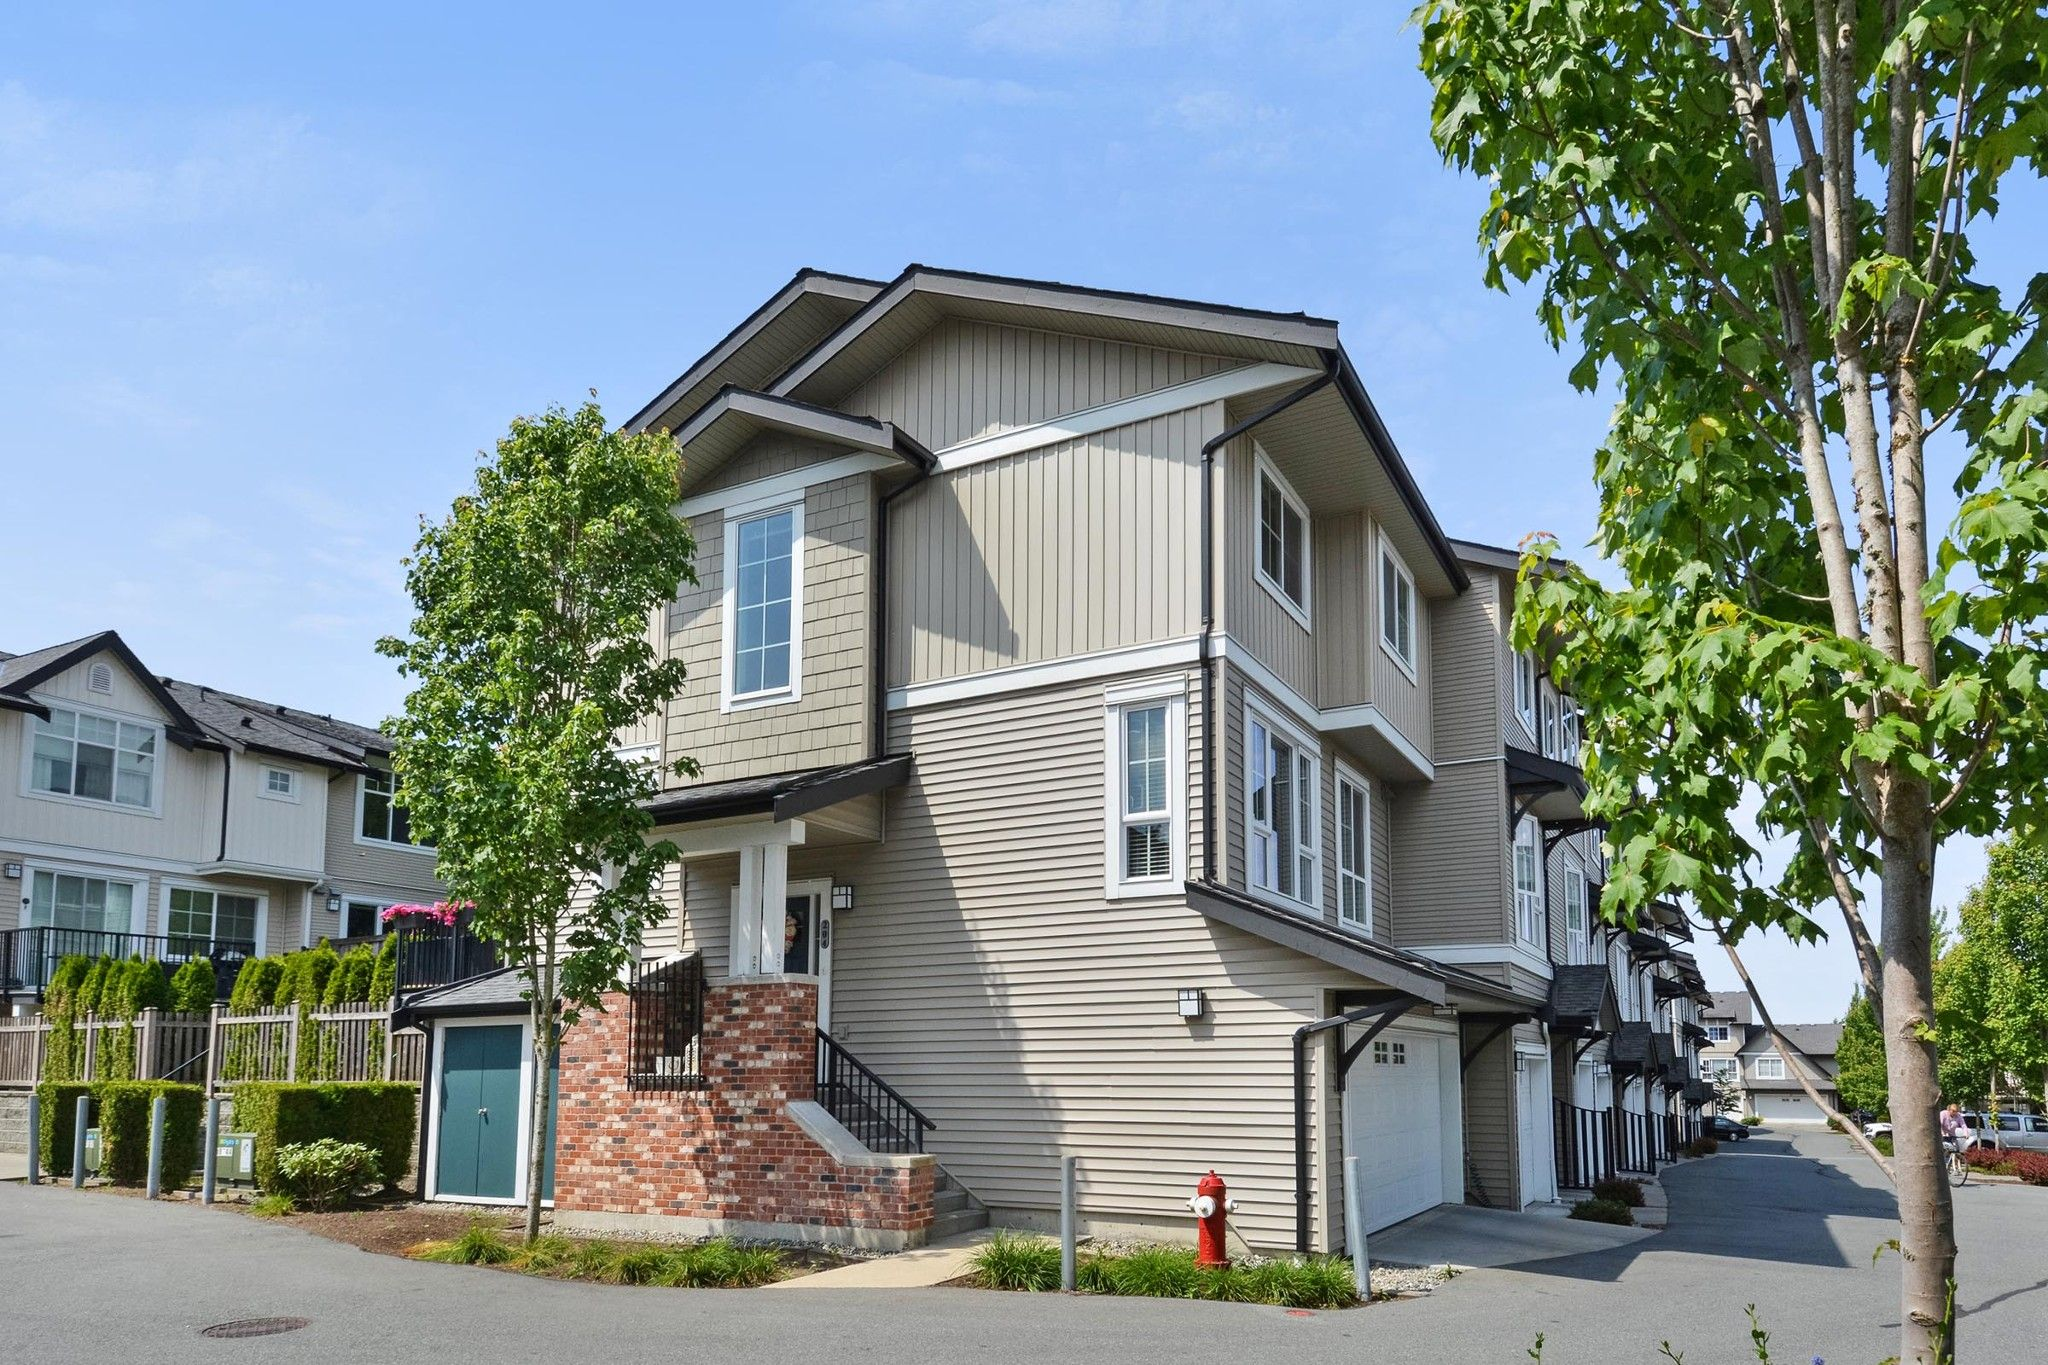 """Main Photo: 204 2450 161A Street in Surrey: Grandview Surrey Townhouse for sale in """"GLENMORE"""" (South Surrey White Rock)  : MLS®# R2277039"""